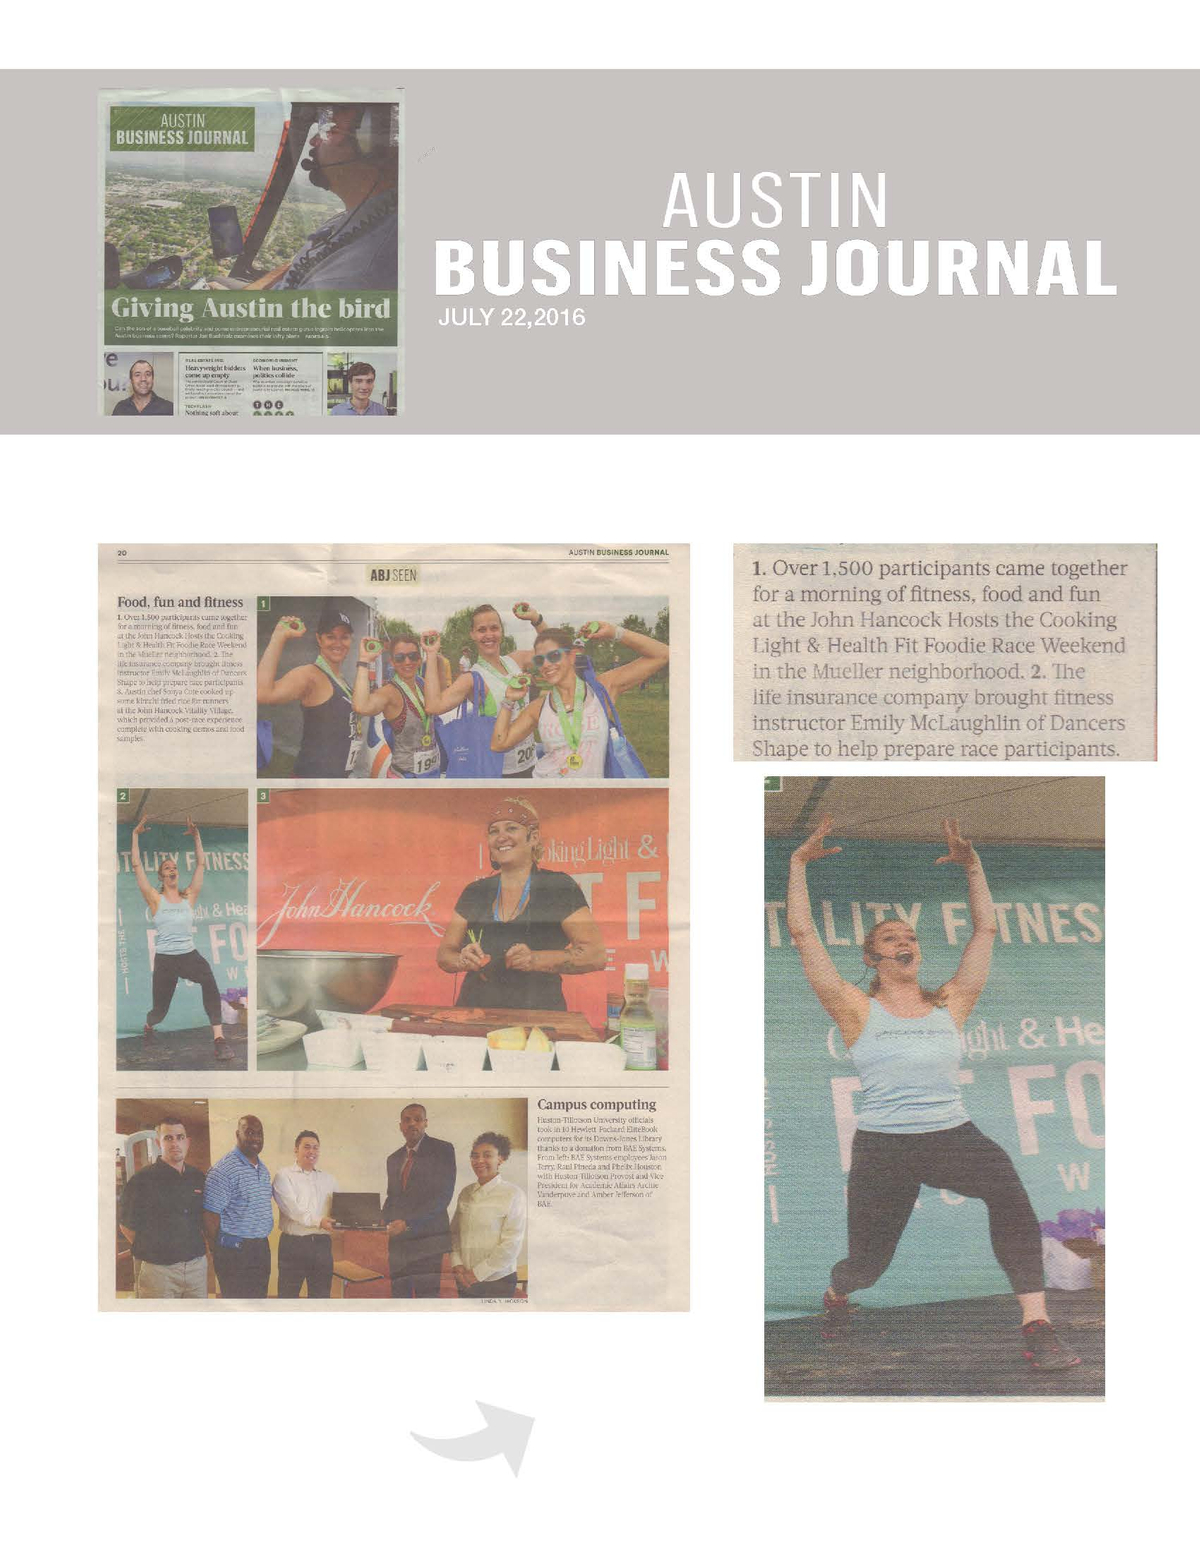 Dancers Shape_Austin Business Journal_7.22.2016.jpg